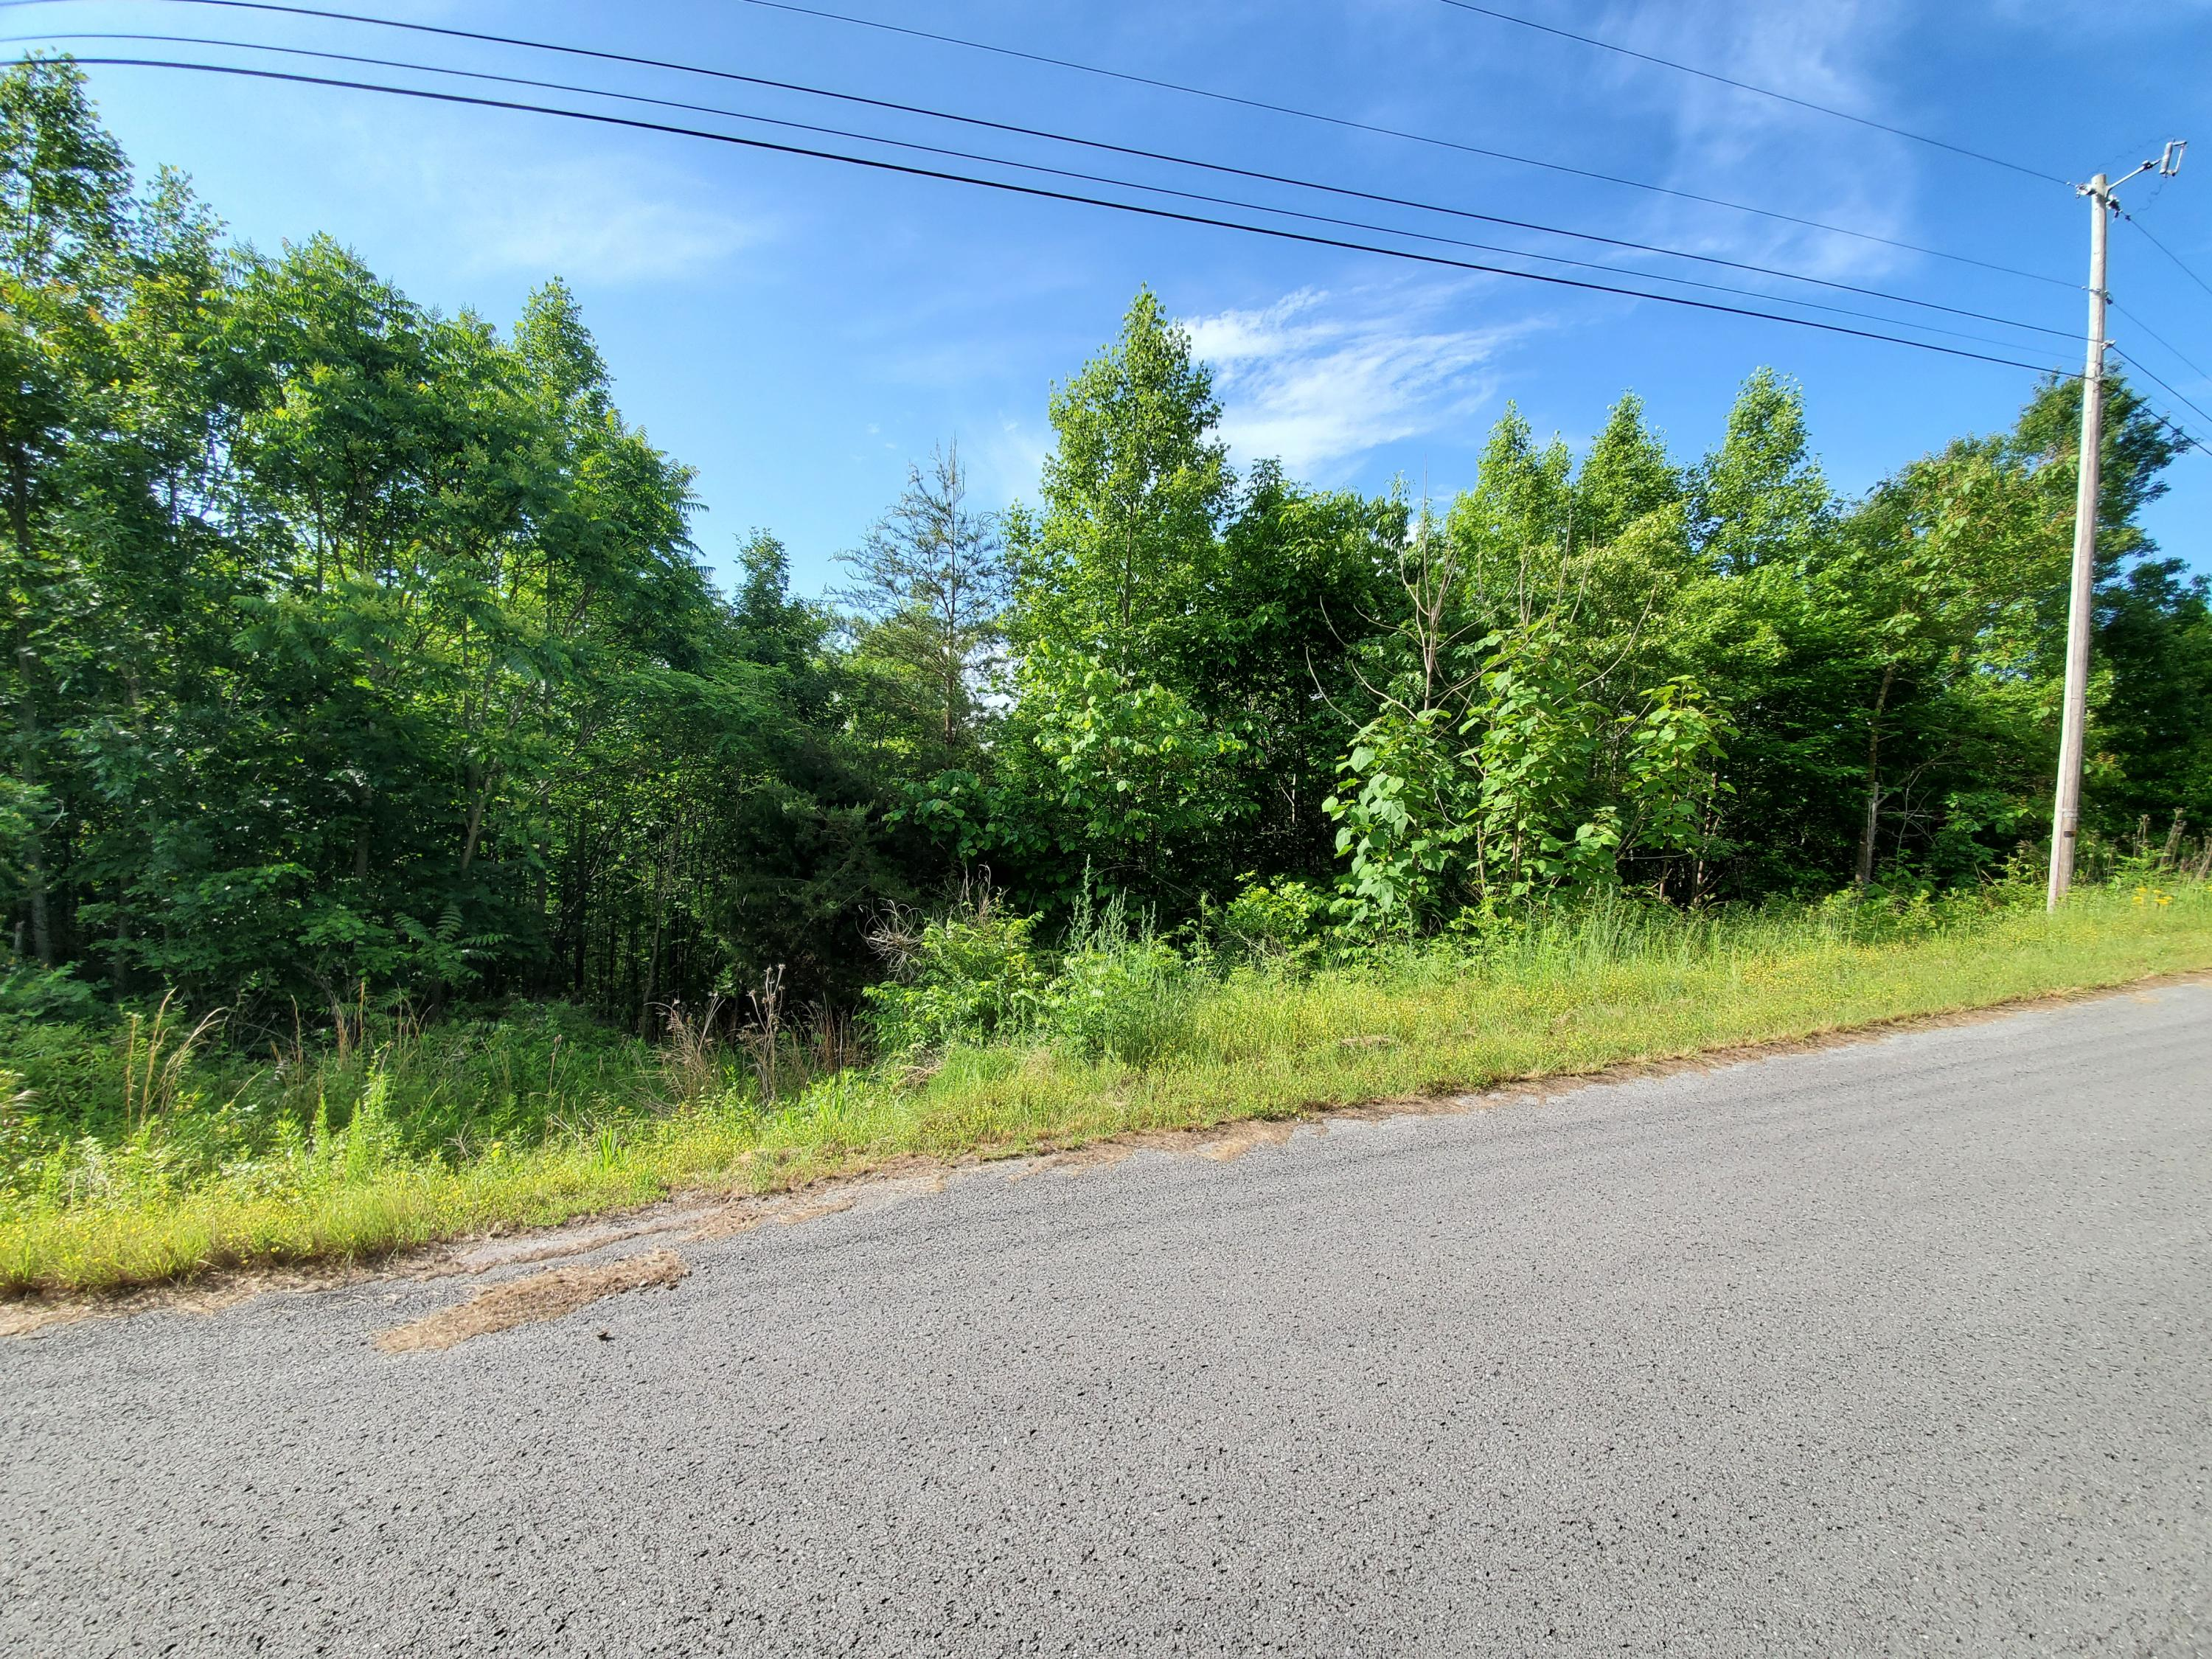 Lot 560 Whistle Valley Rd: